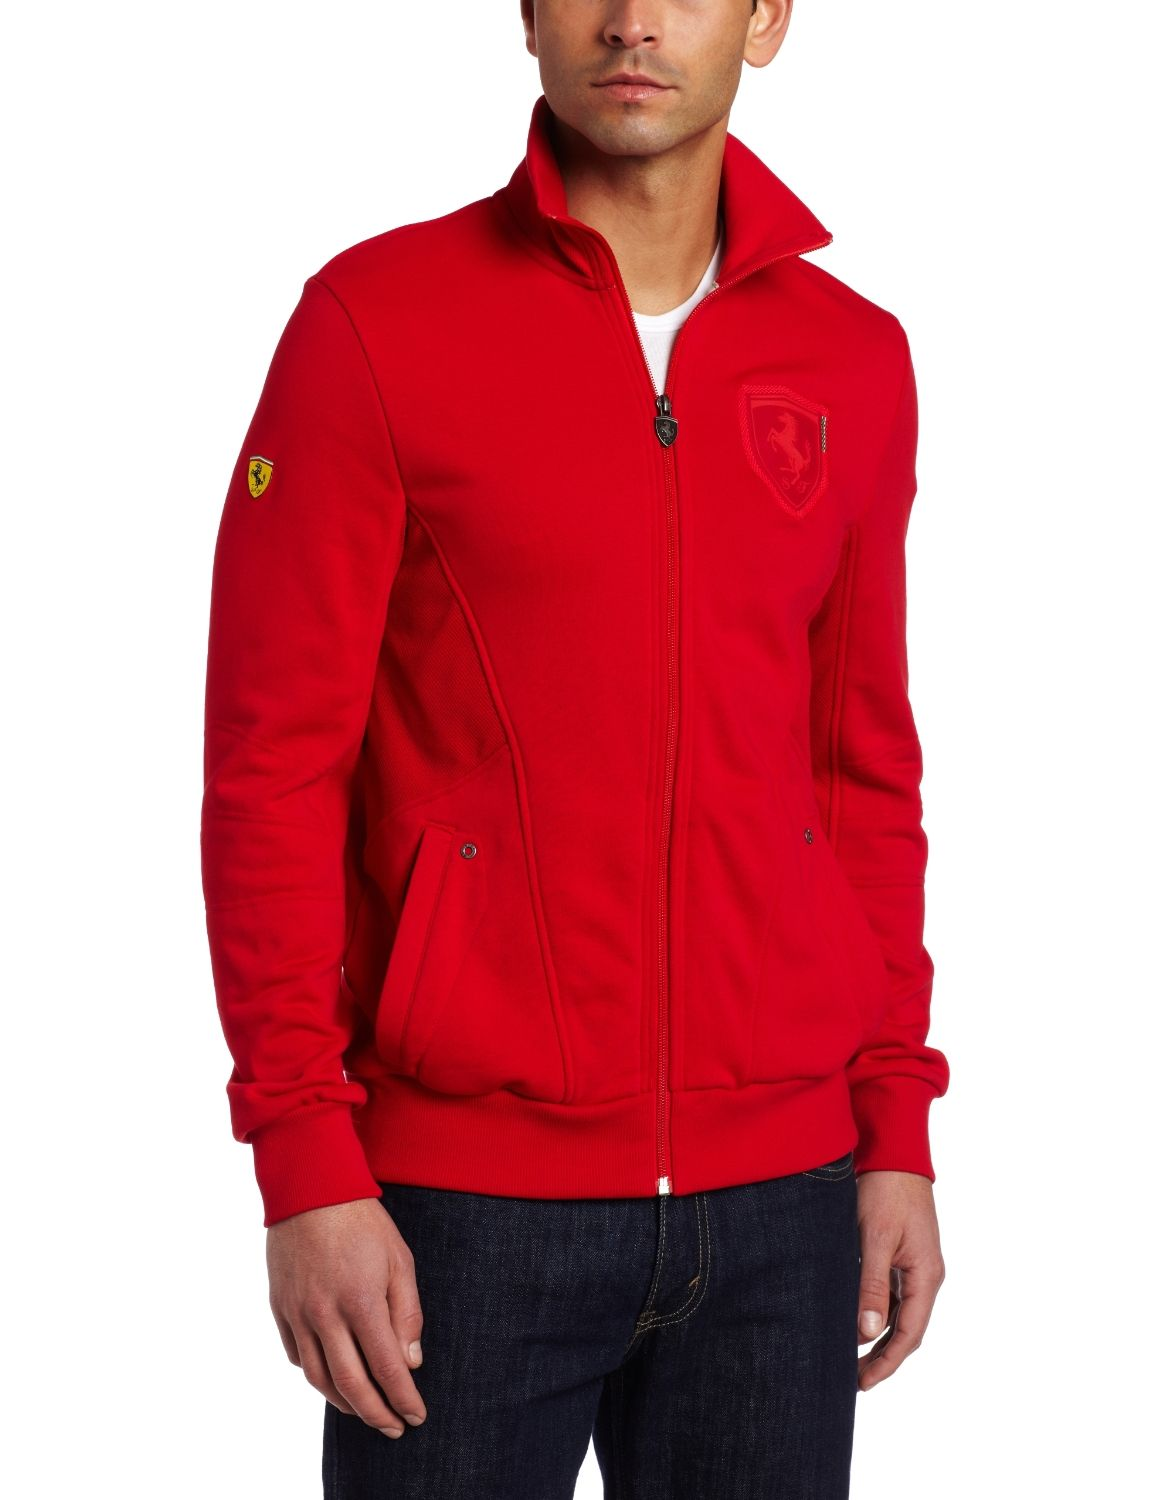 b5cefd55d9e9 Men s Fashion – Puma Apparel – Ferrari Sweat Jacket